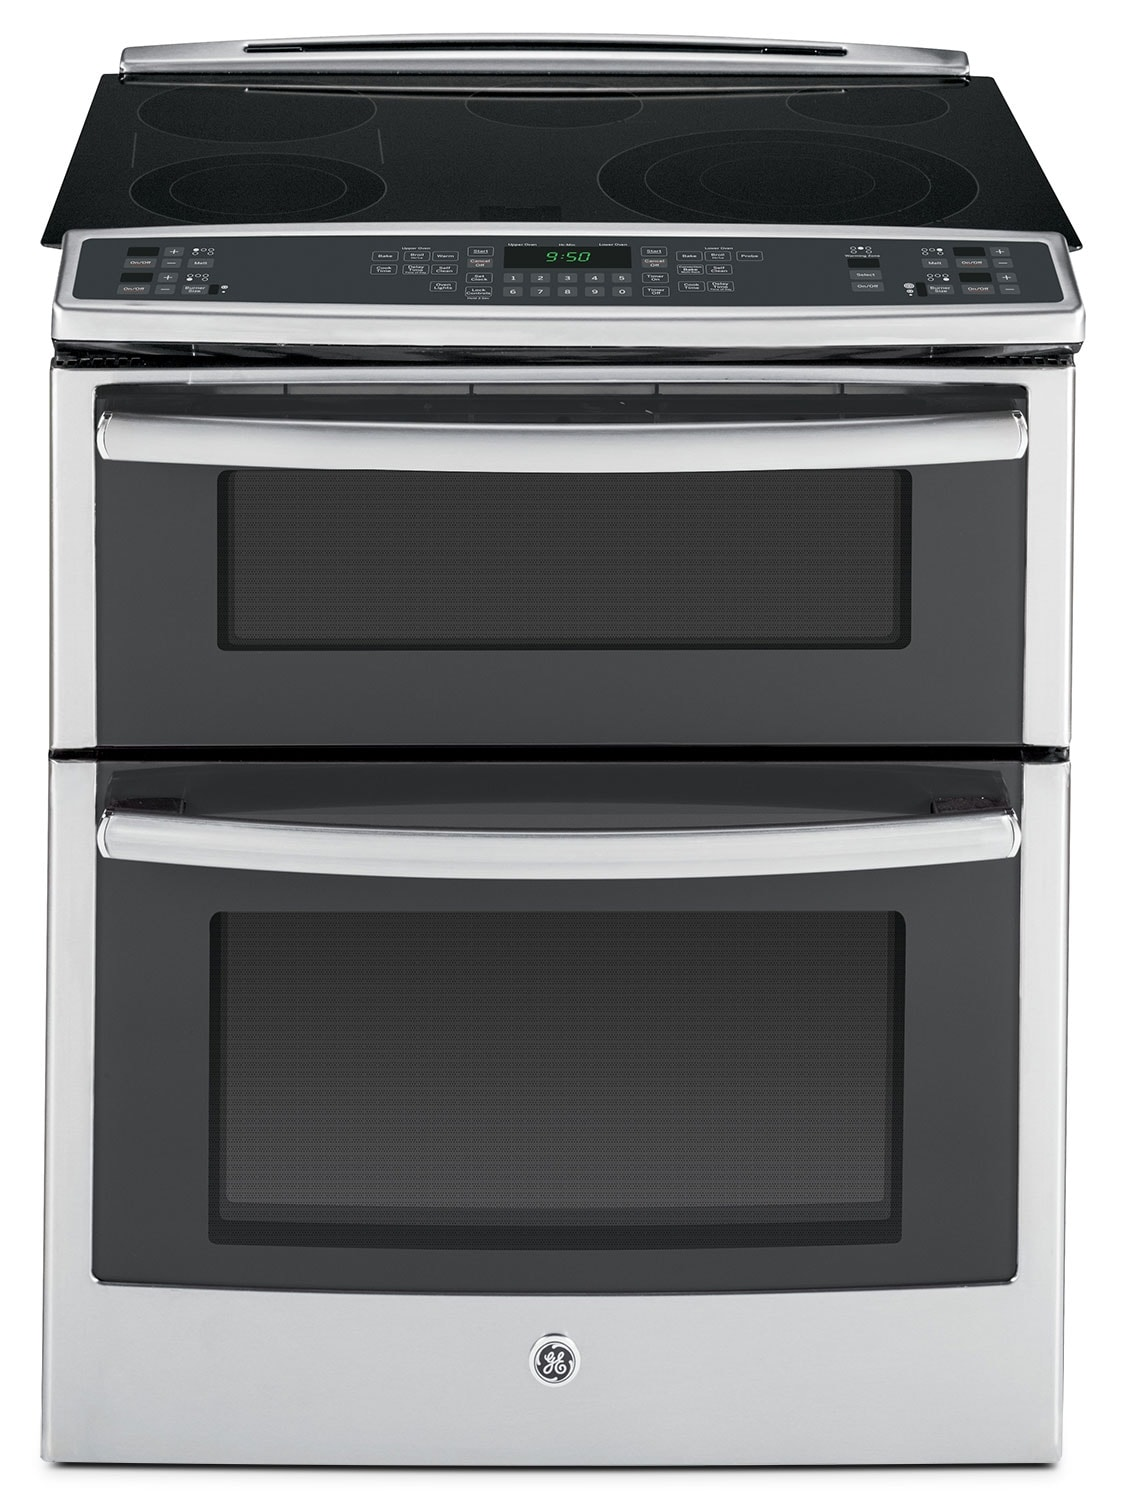 [GE Stainless Steel Slide-In Electric Double-Oven Convection Range (6.6 Cu. Ft.) - PS950SFSS]